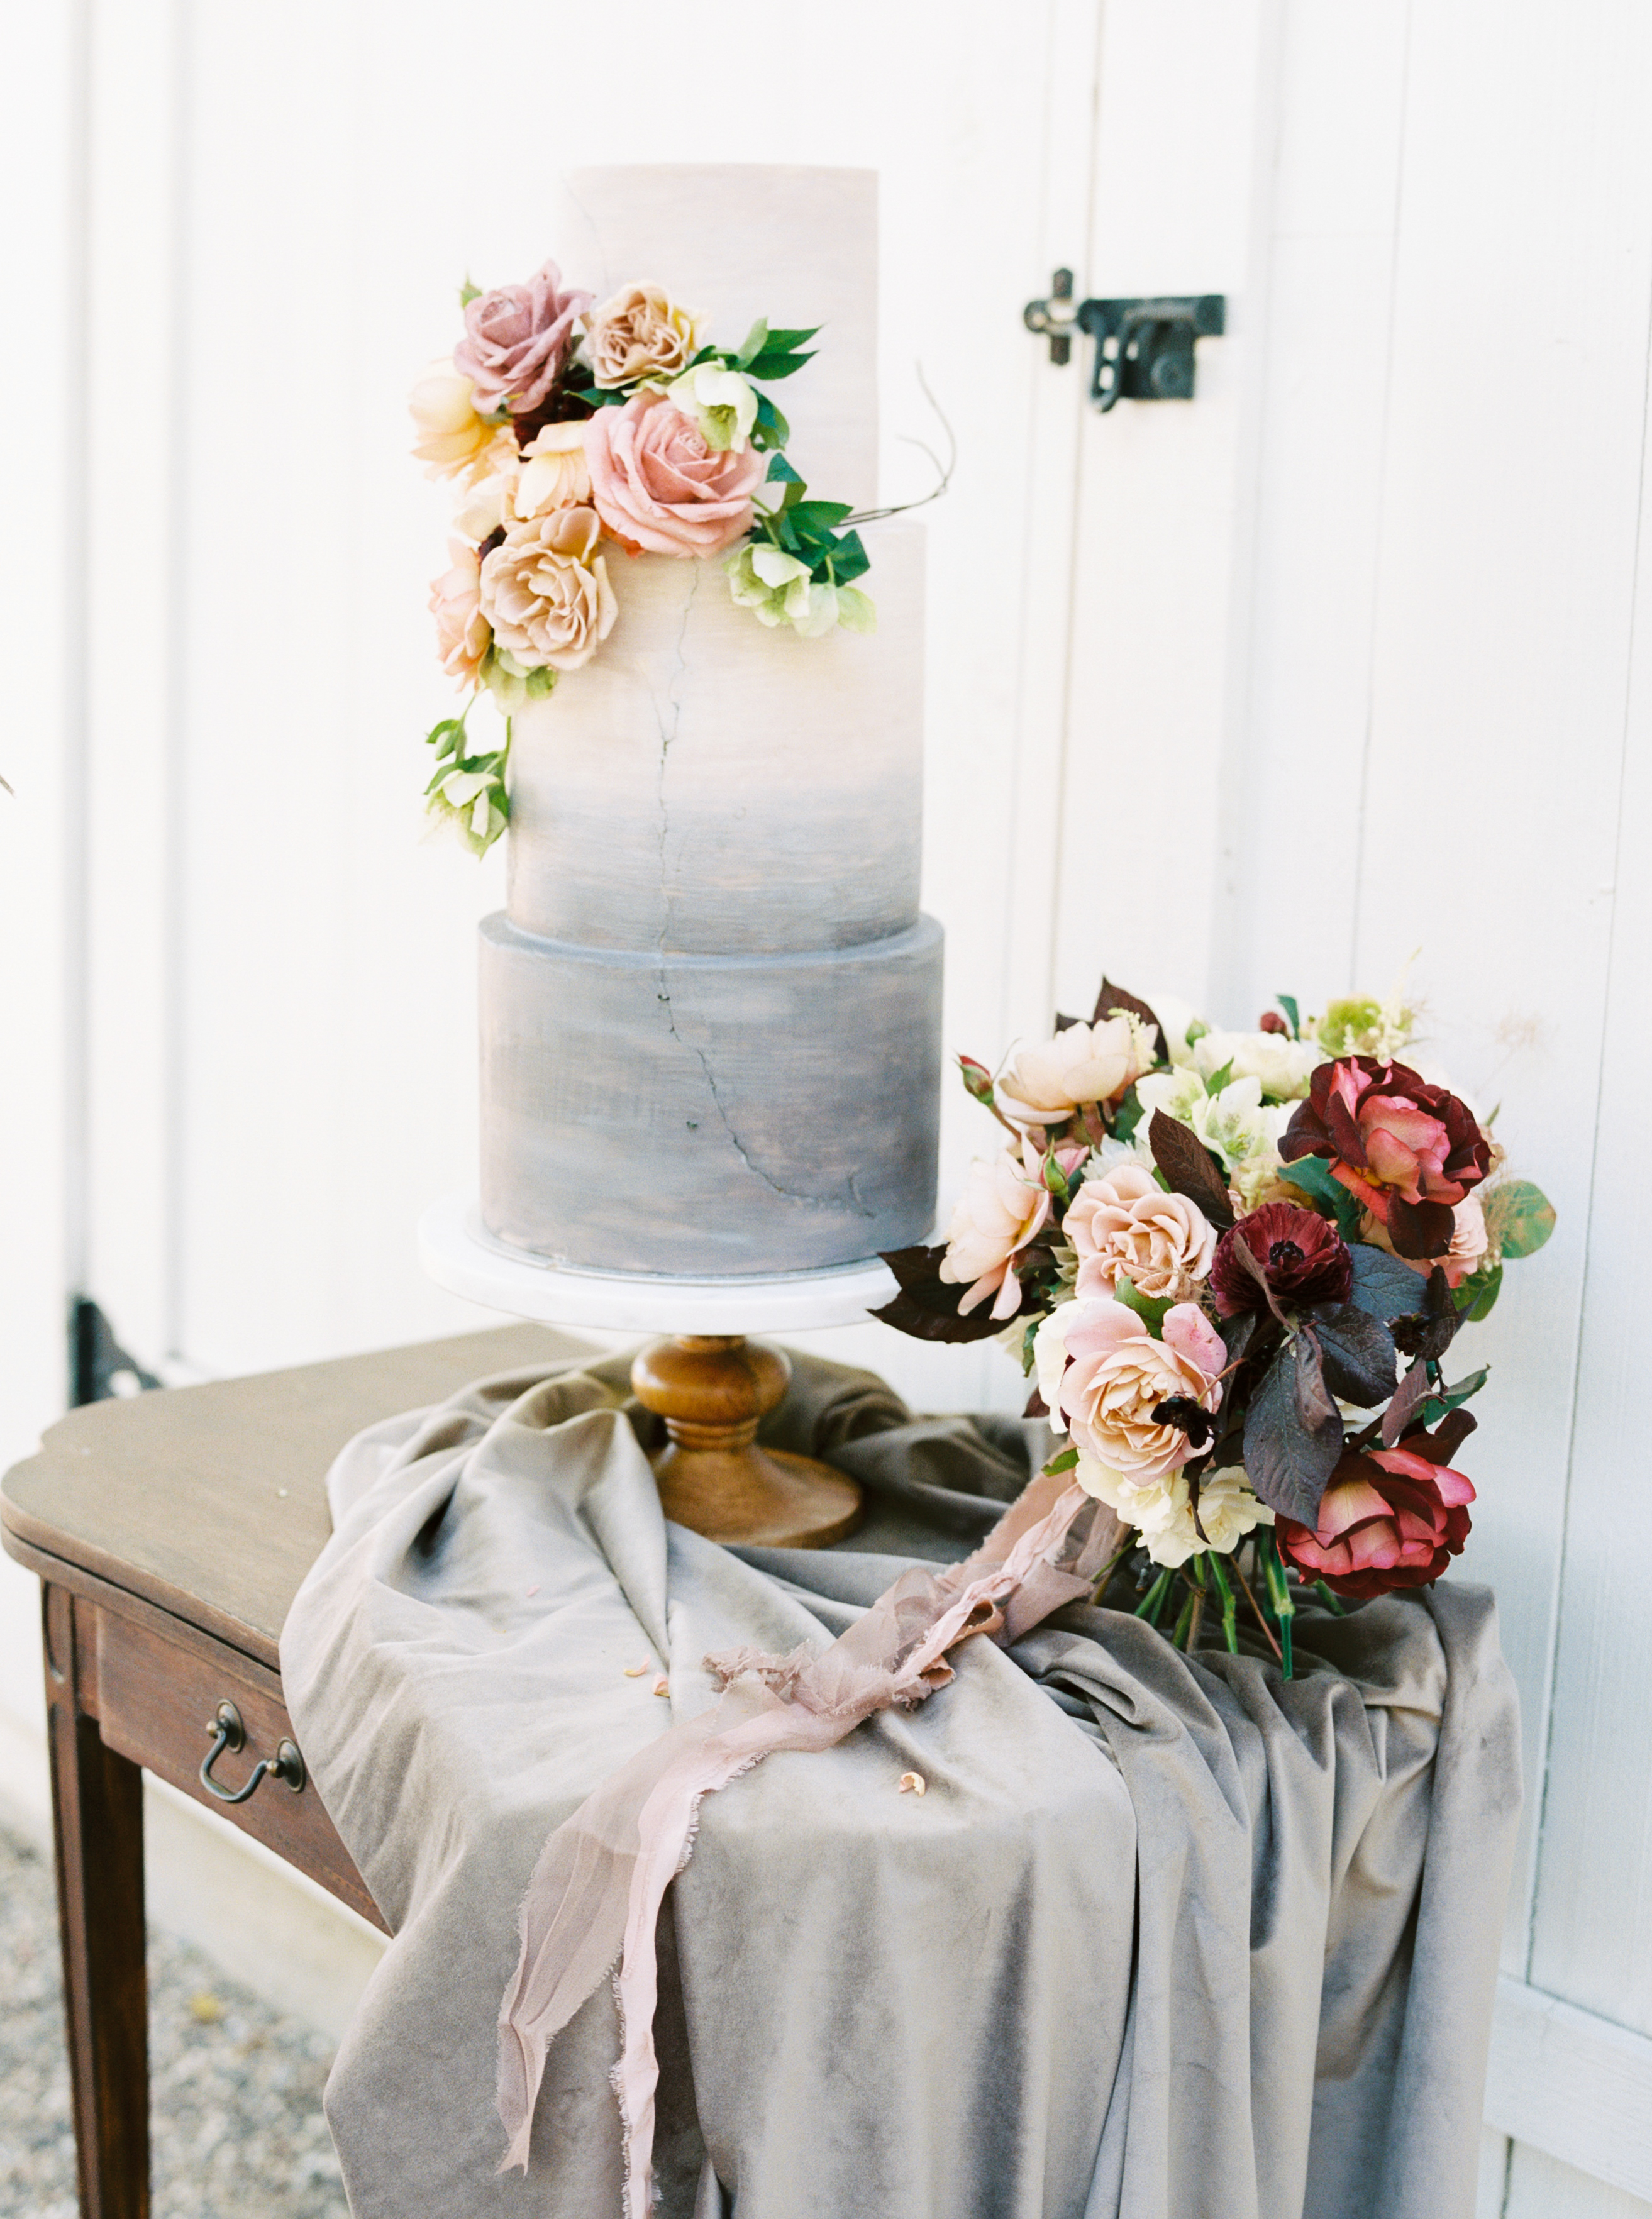 HammerskyWineryWeddingInspiration-JenRod